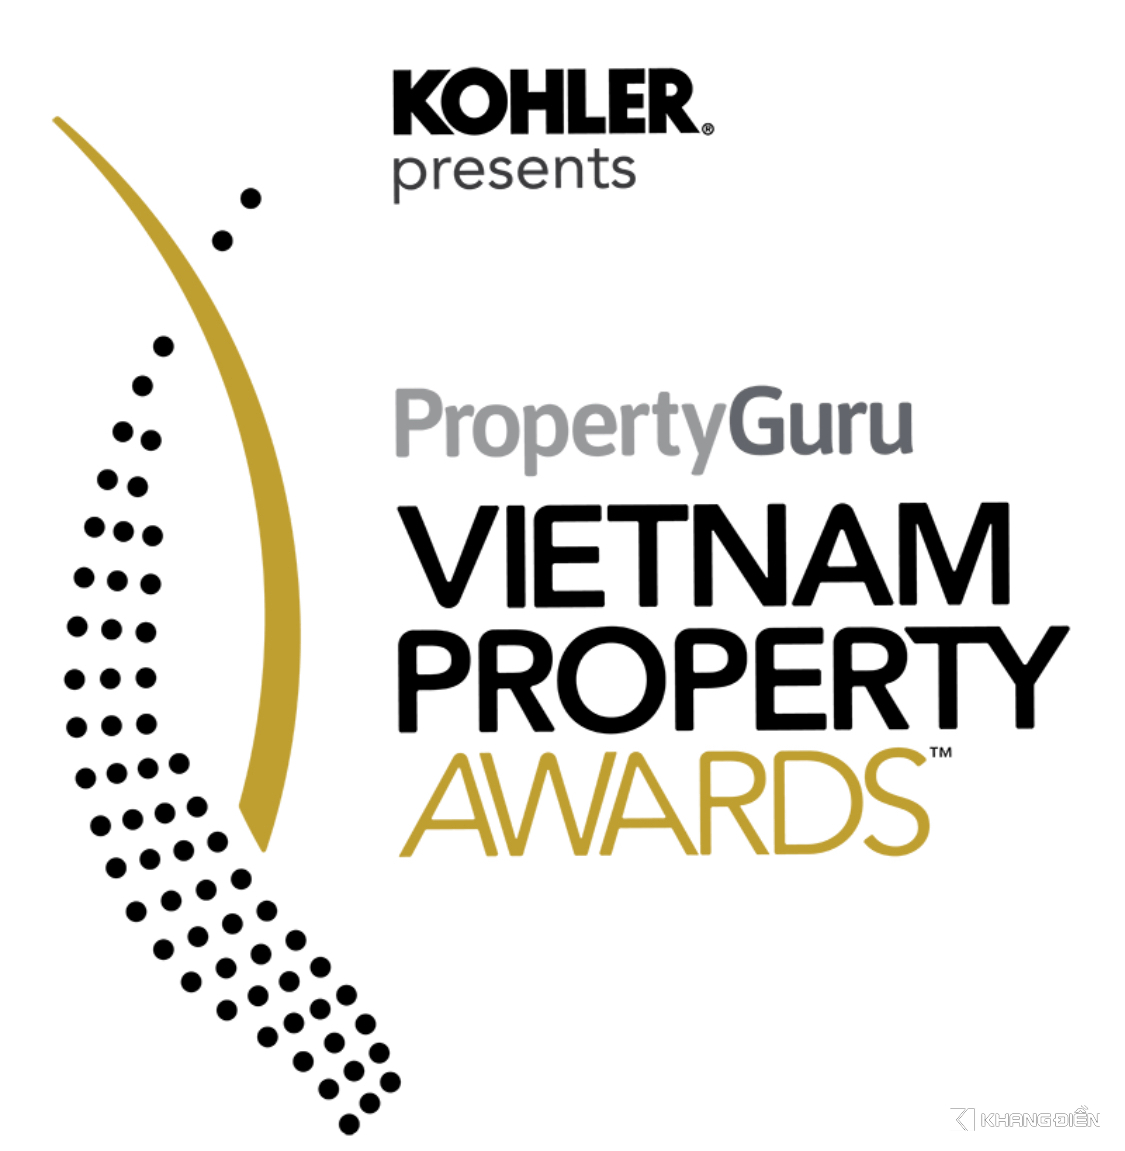 Vietnam Property Awards